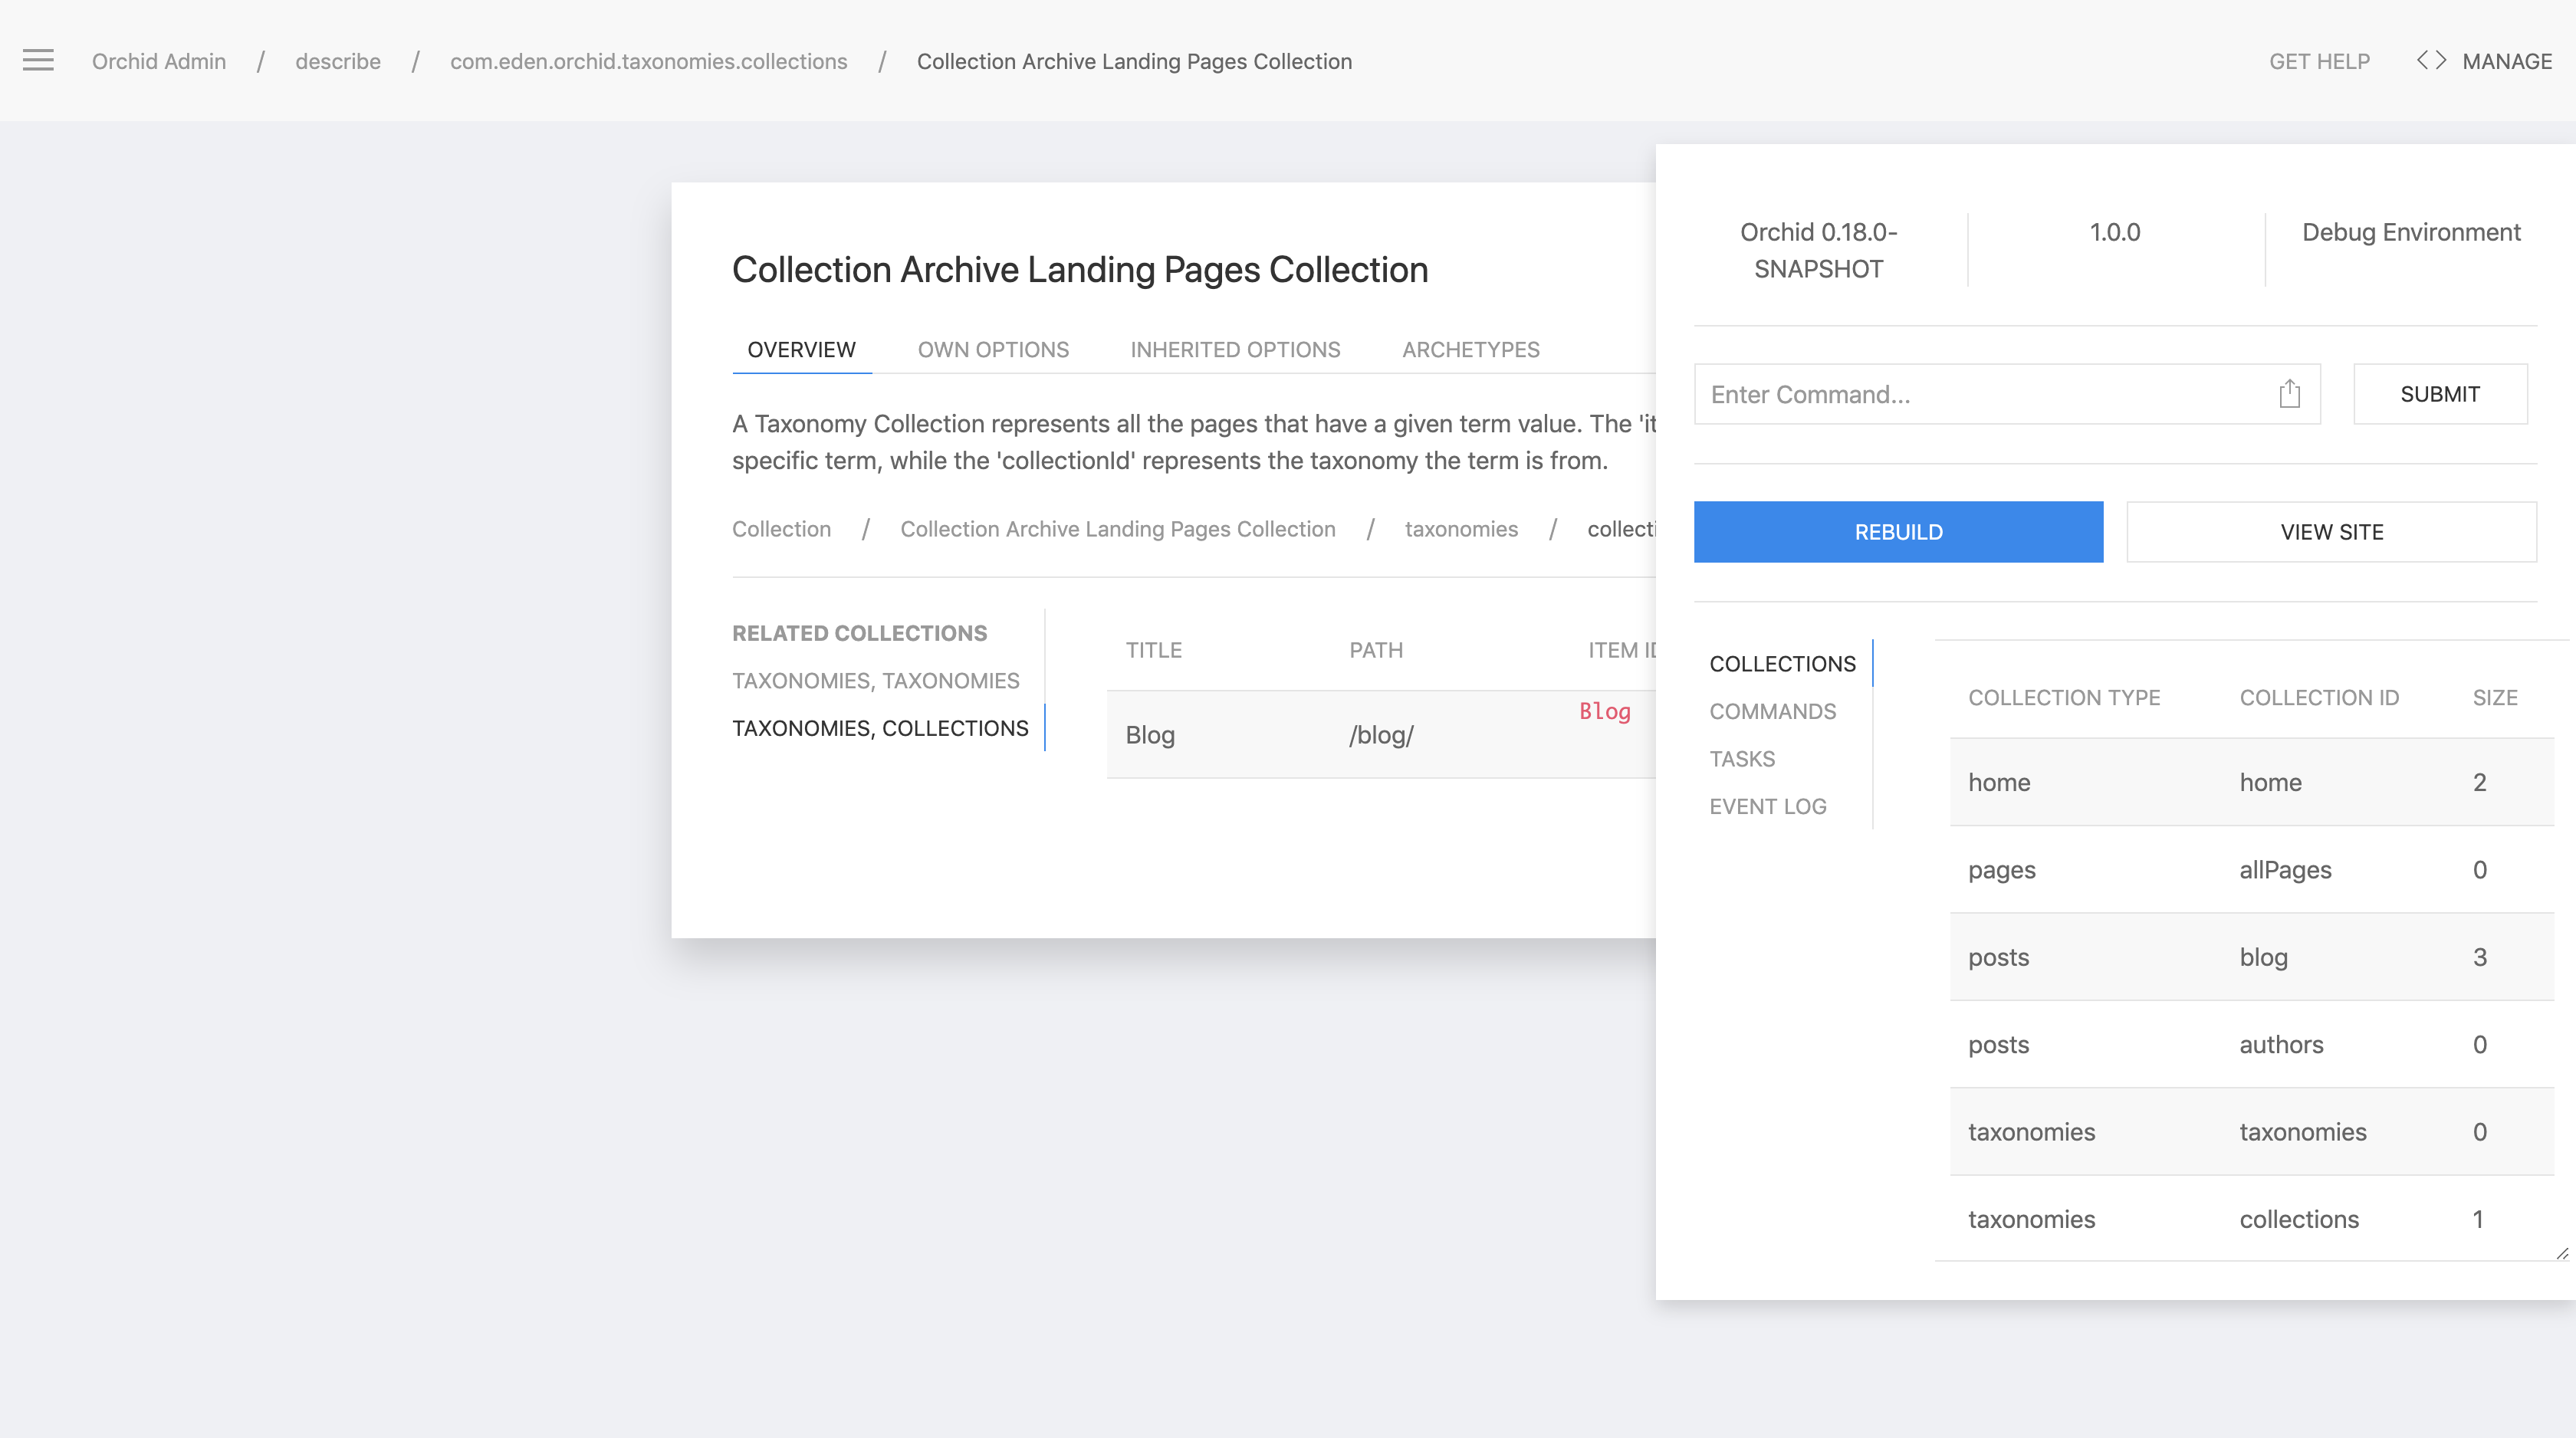 Orchid Admin Panel Collections